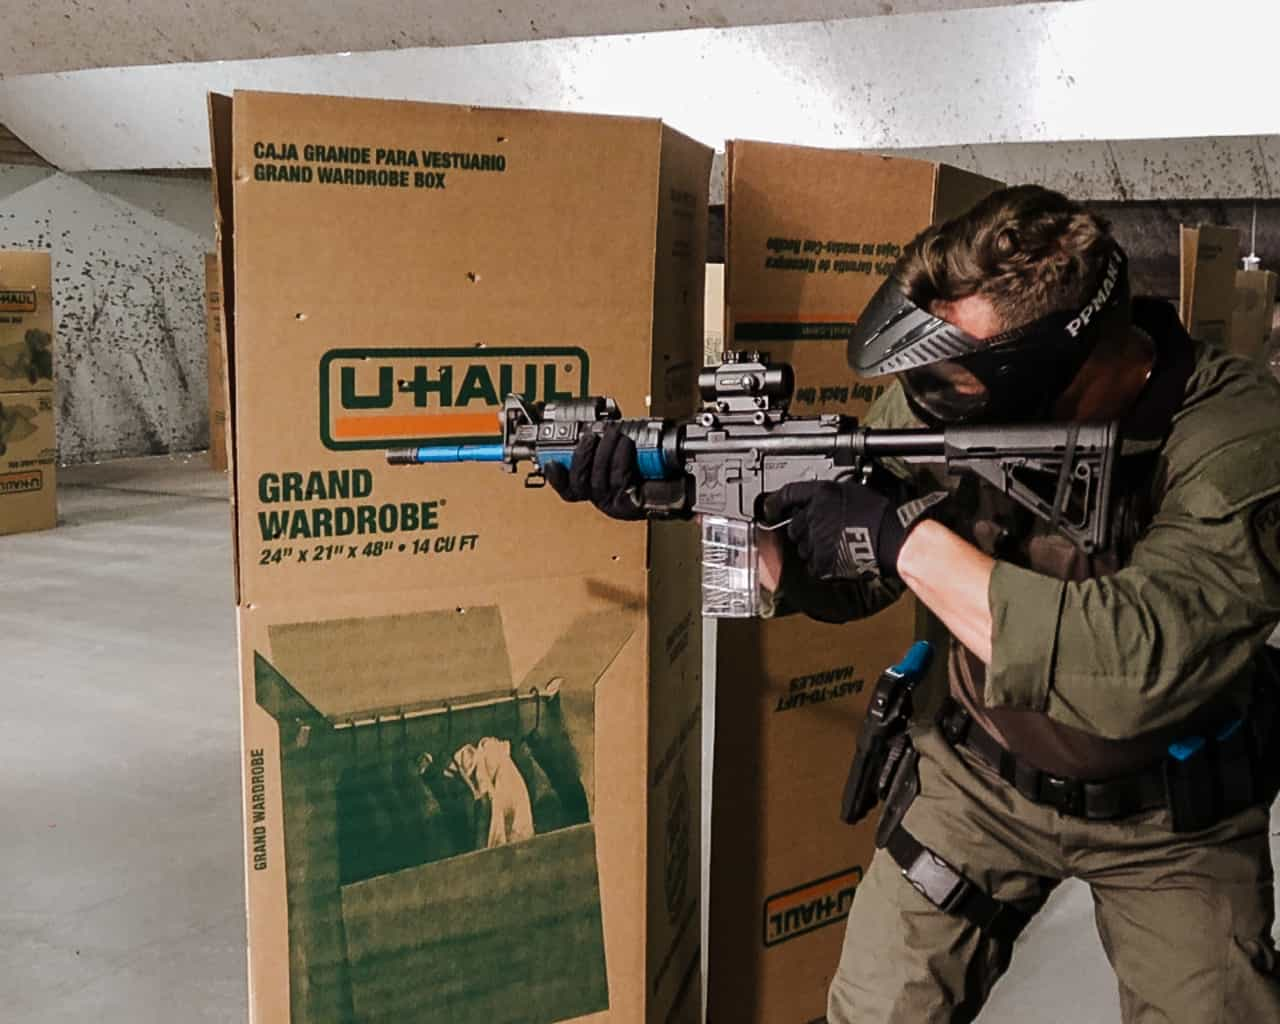 carbine gunfighter force on force drills with offhand shooting